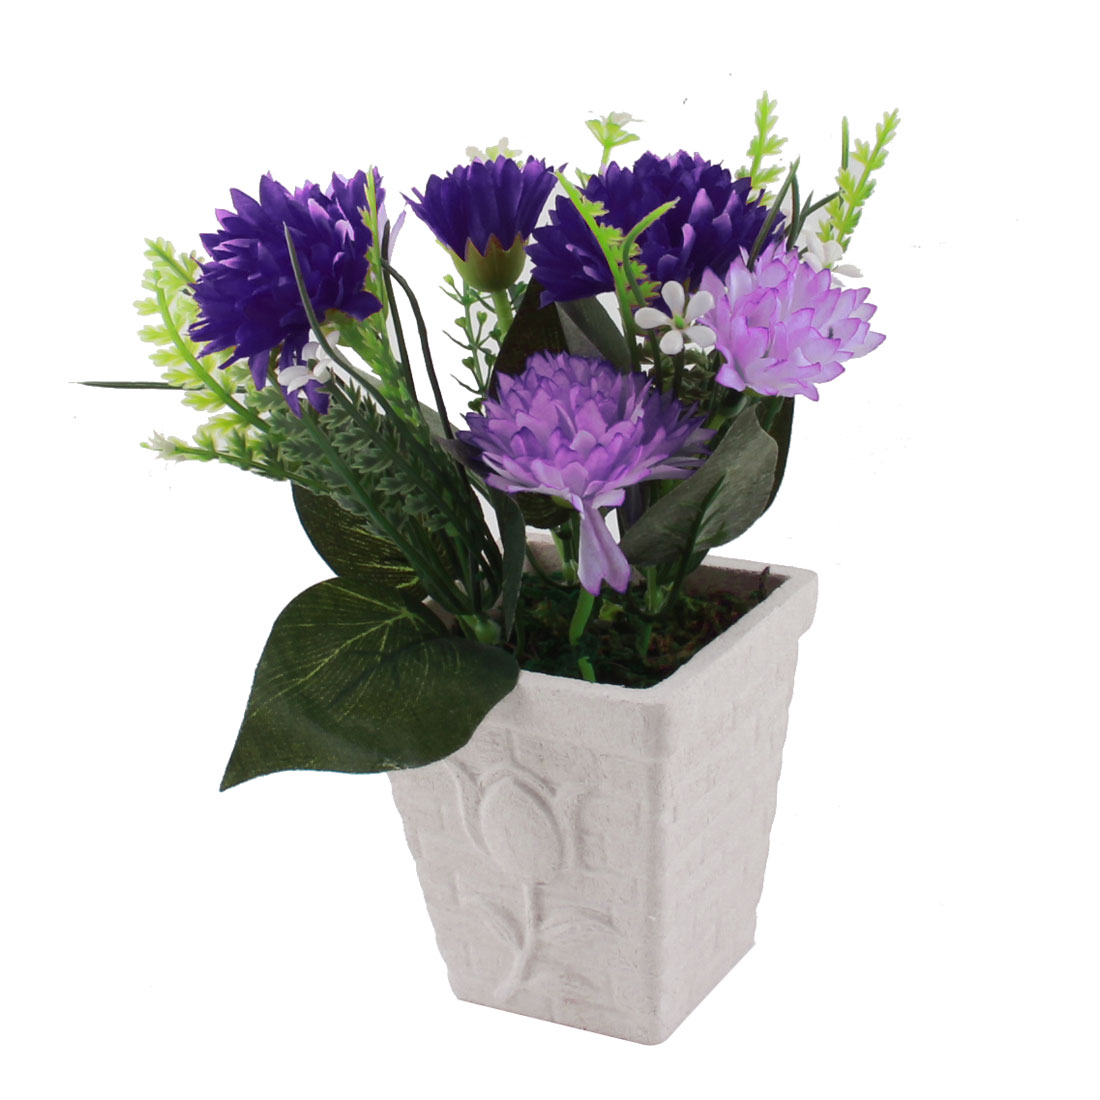 Table Decor Purple White Plastic Fabric Flowers Artificial Flowerpot Potting